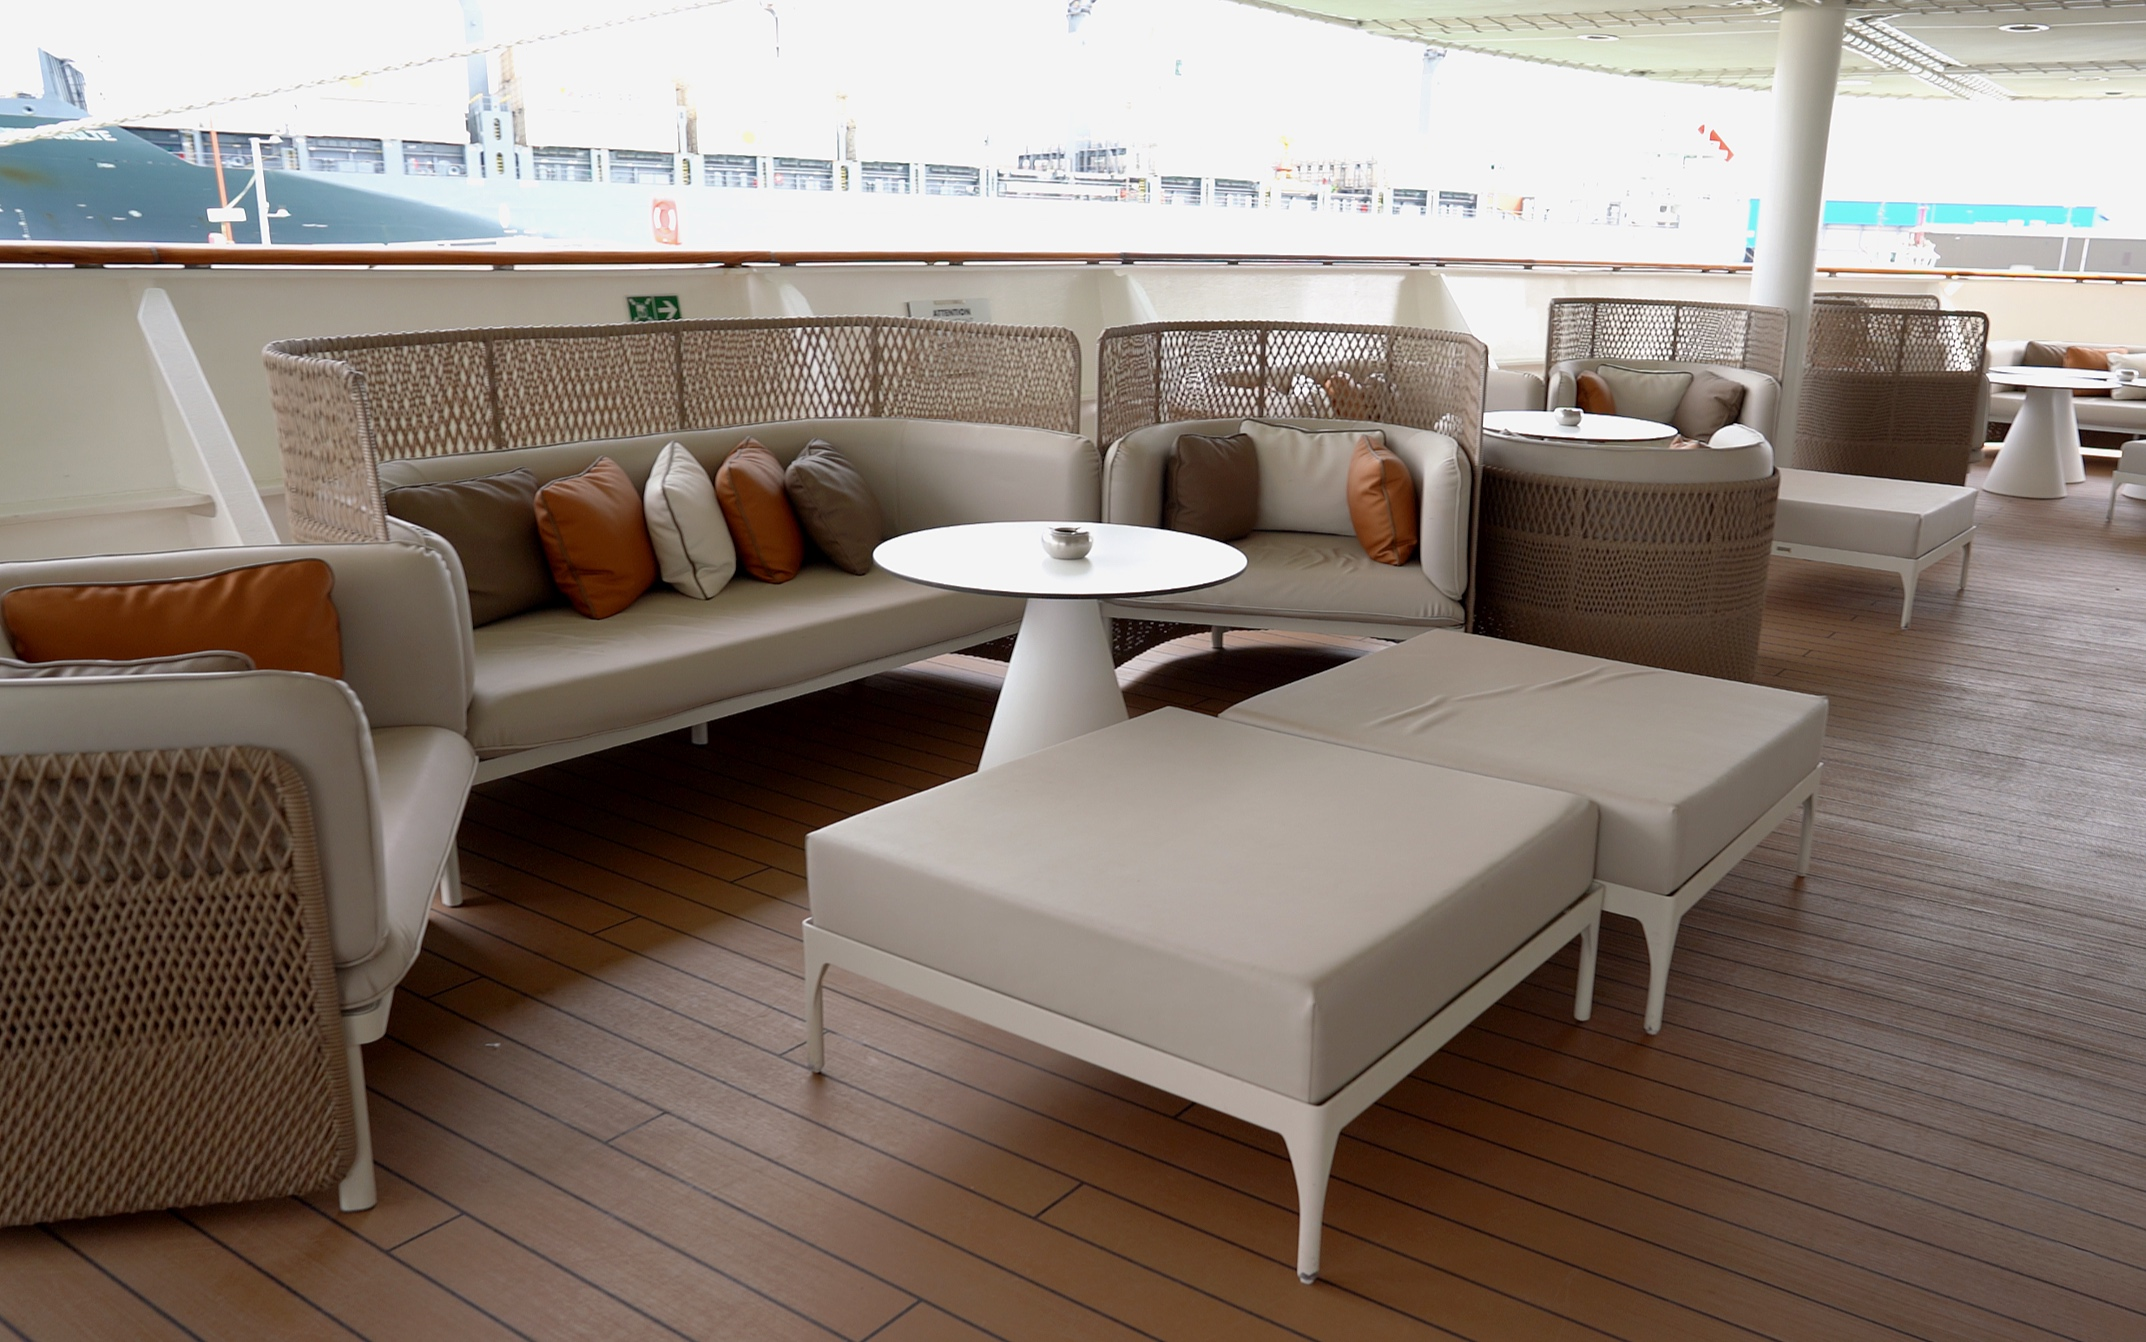 The Lounge outside seating area.